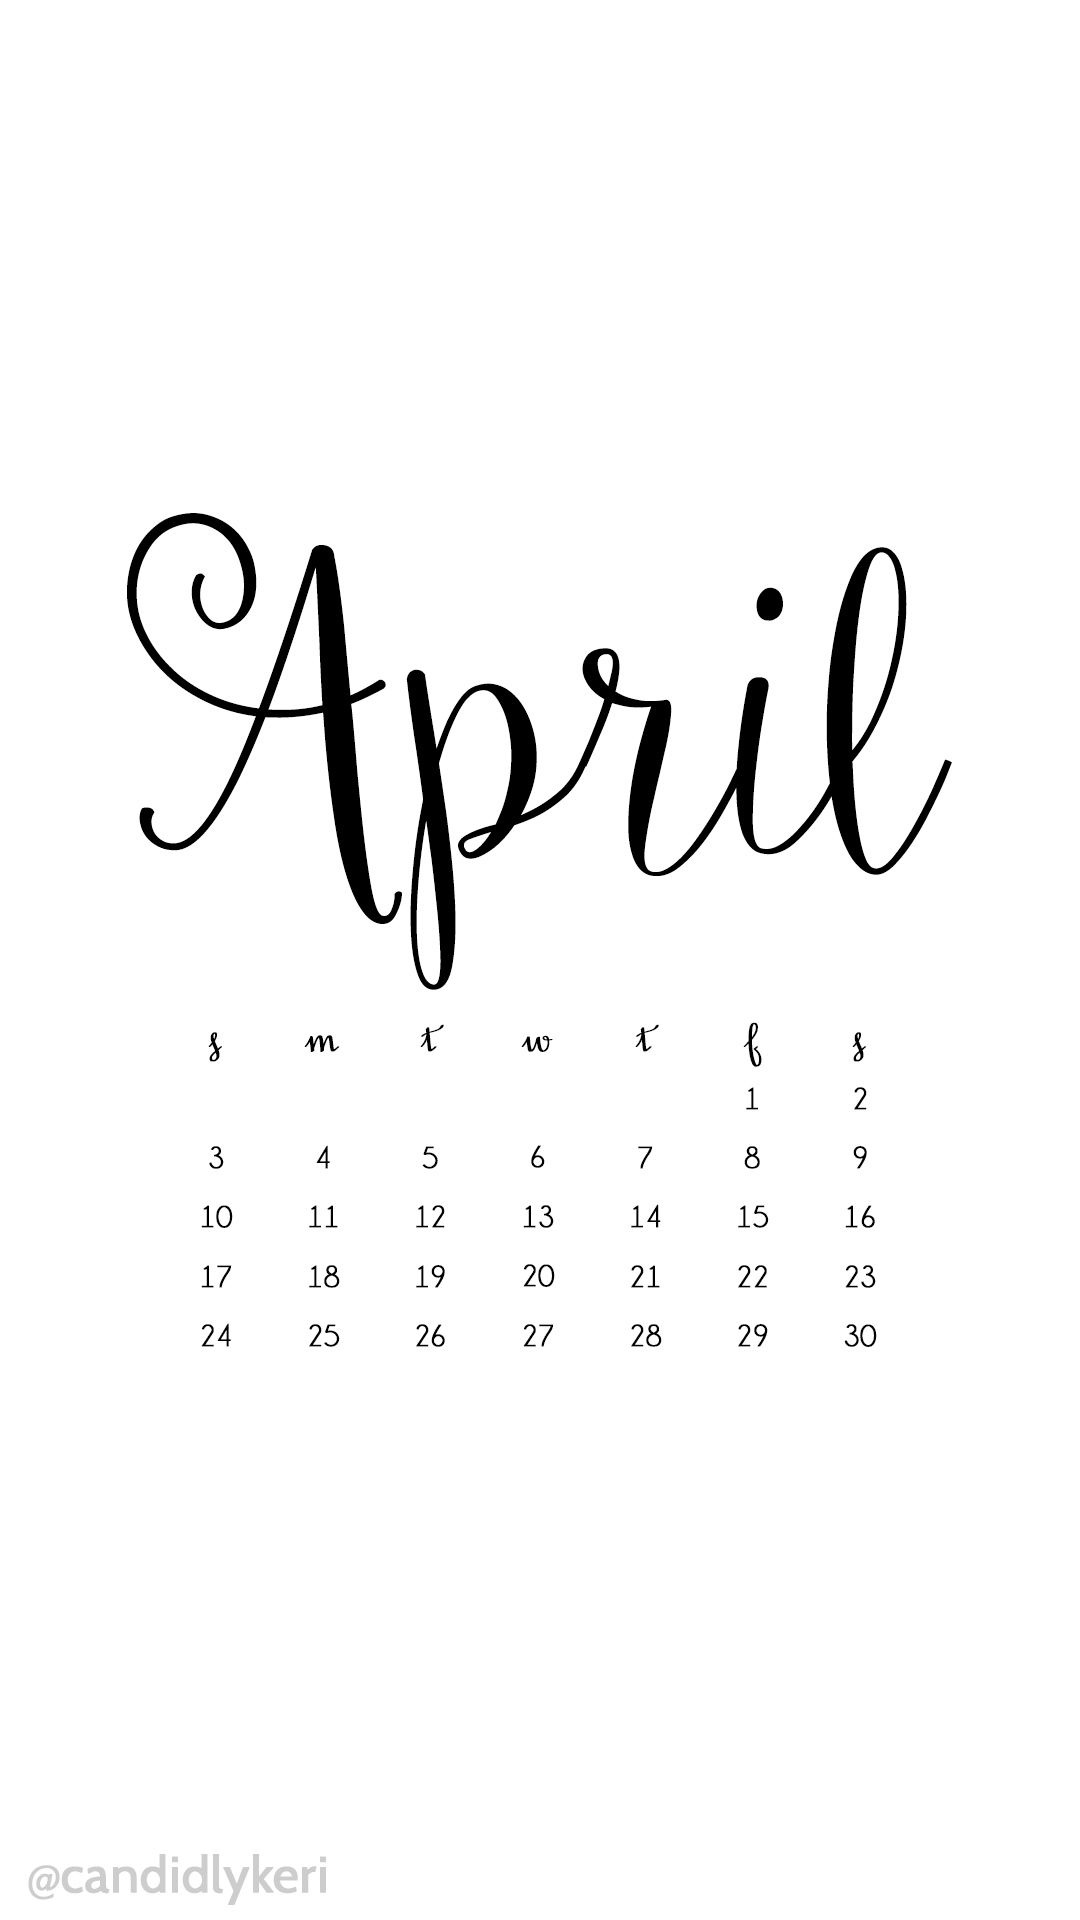 April 2016 cursive handwriting script writing for a ...